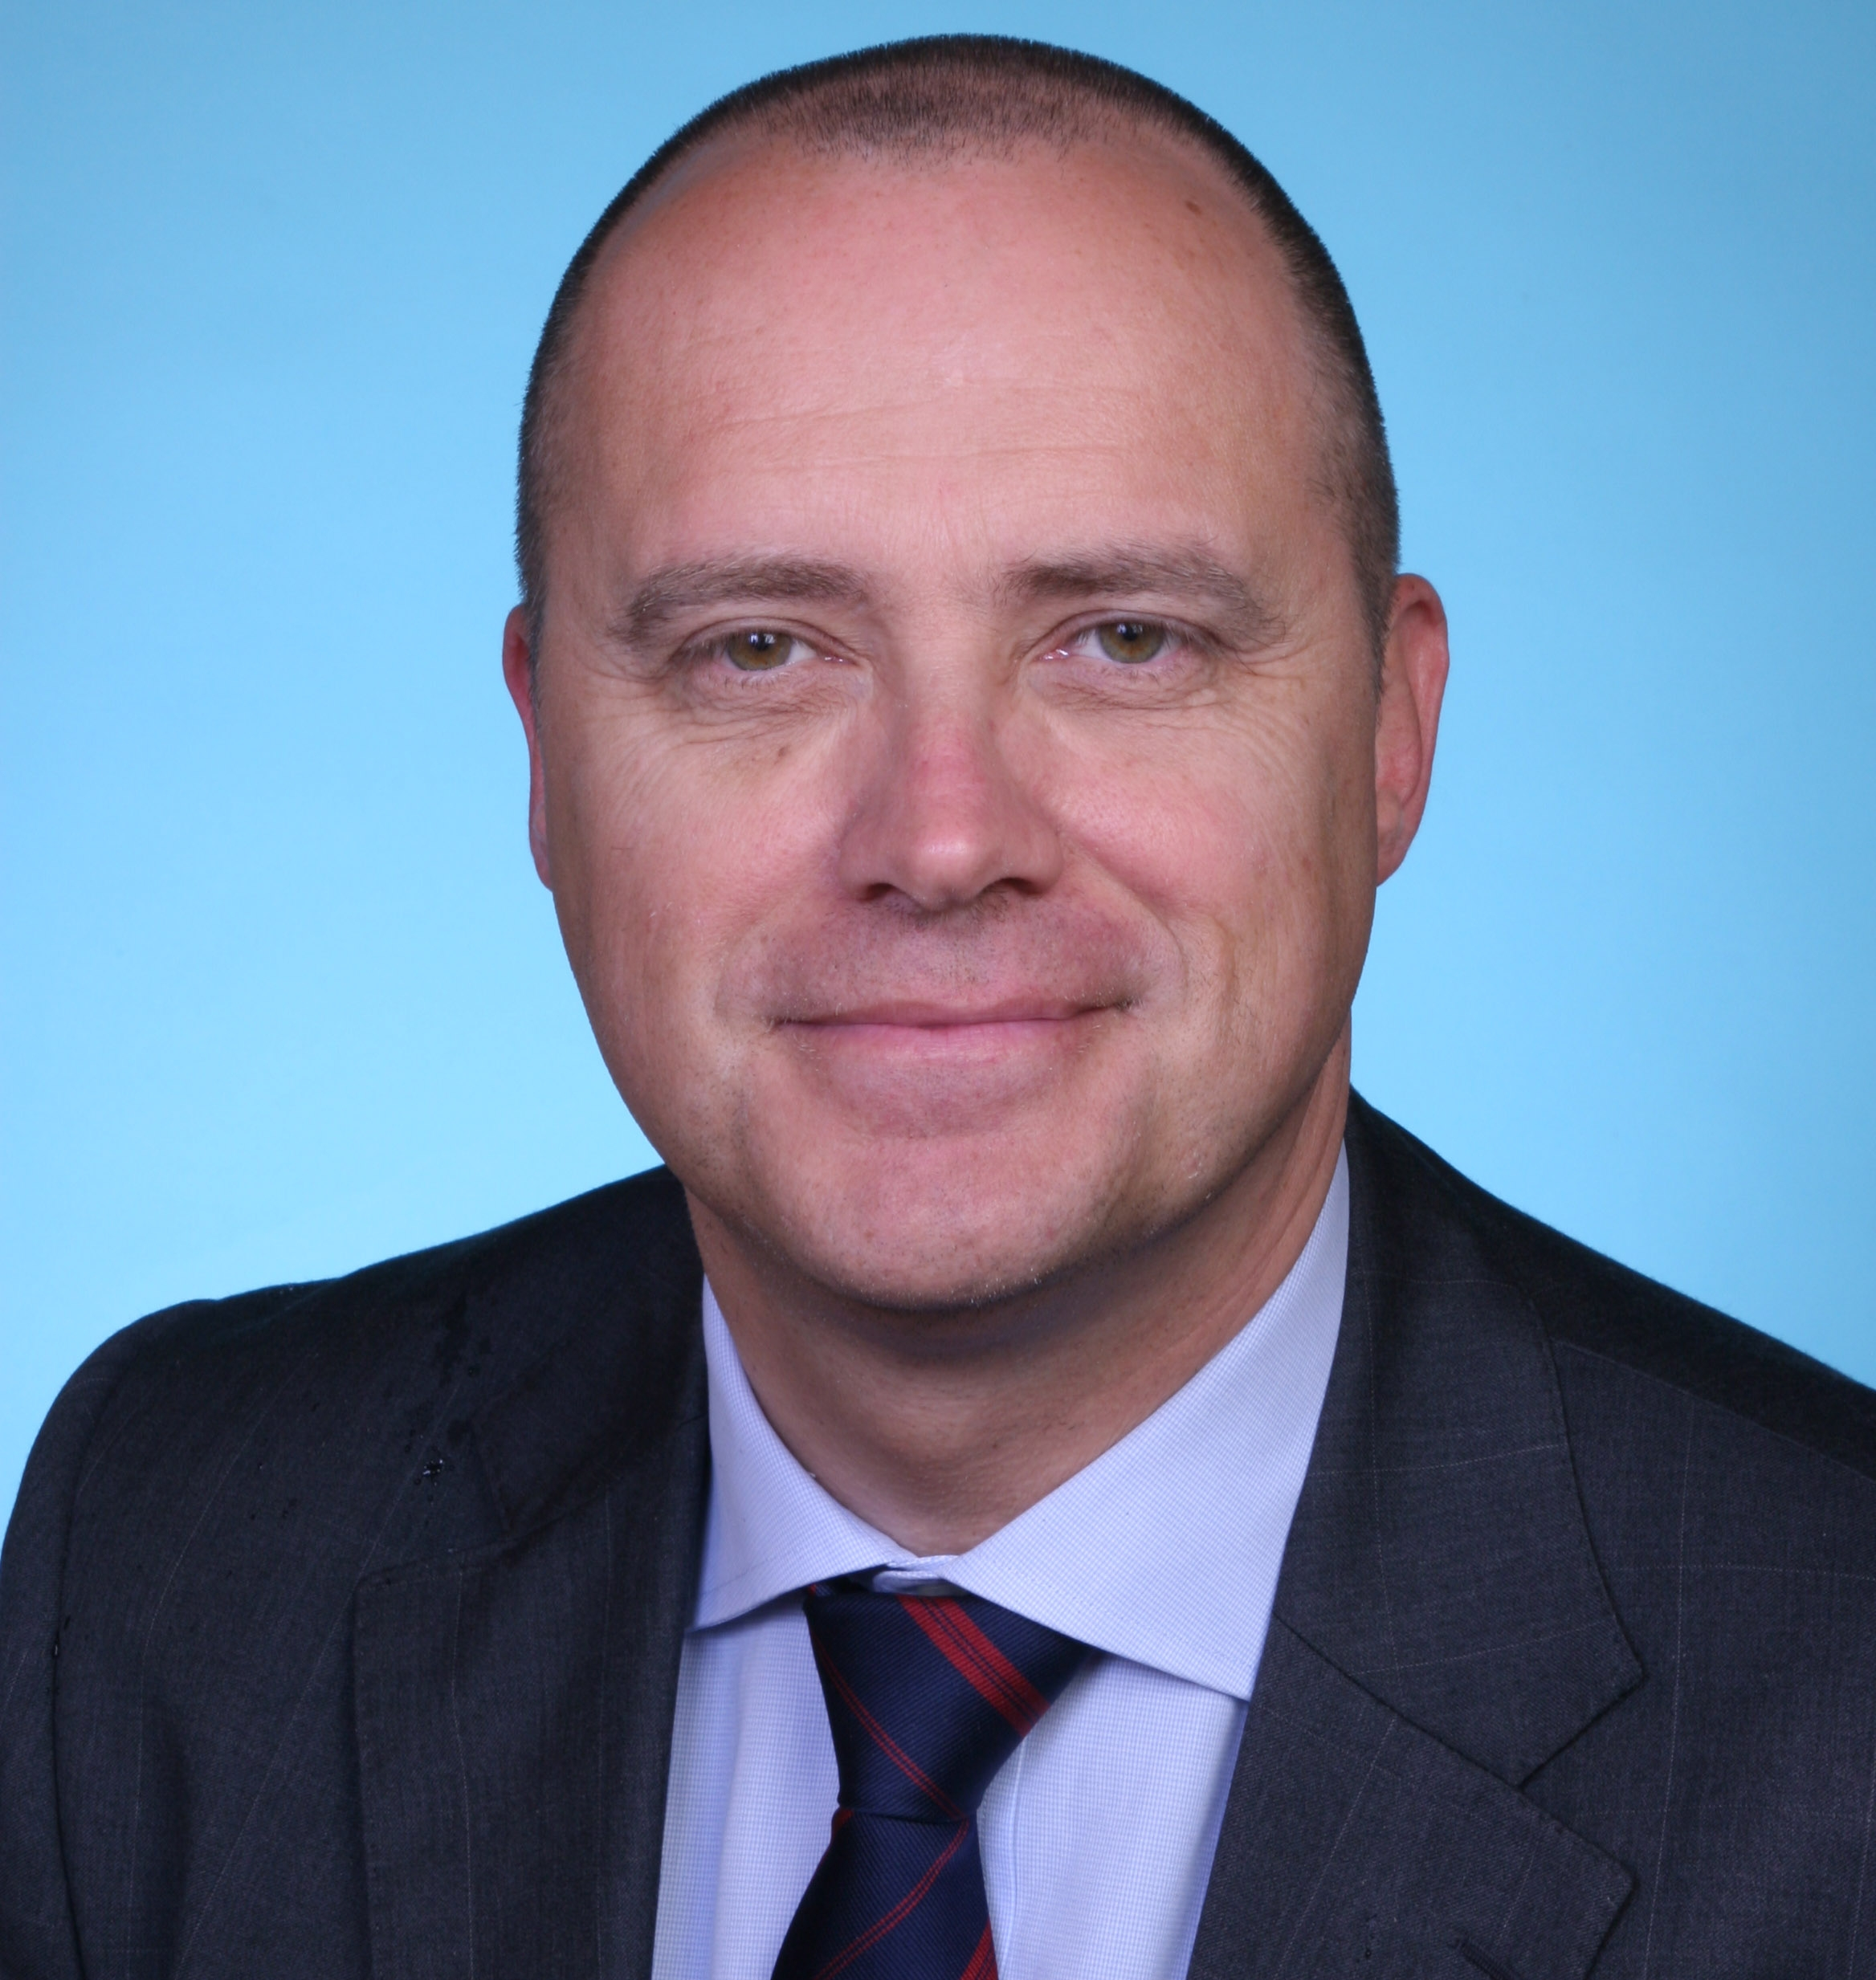 Roberto Burlo, 